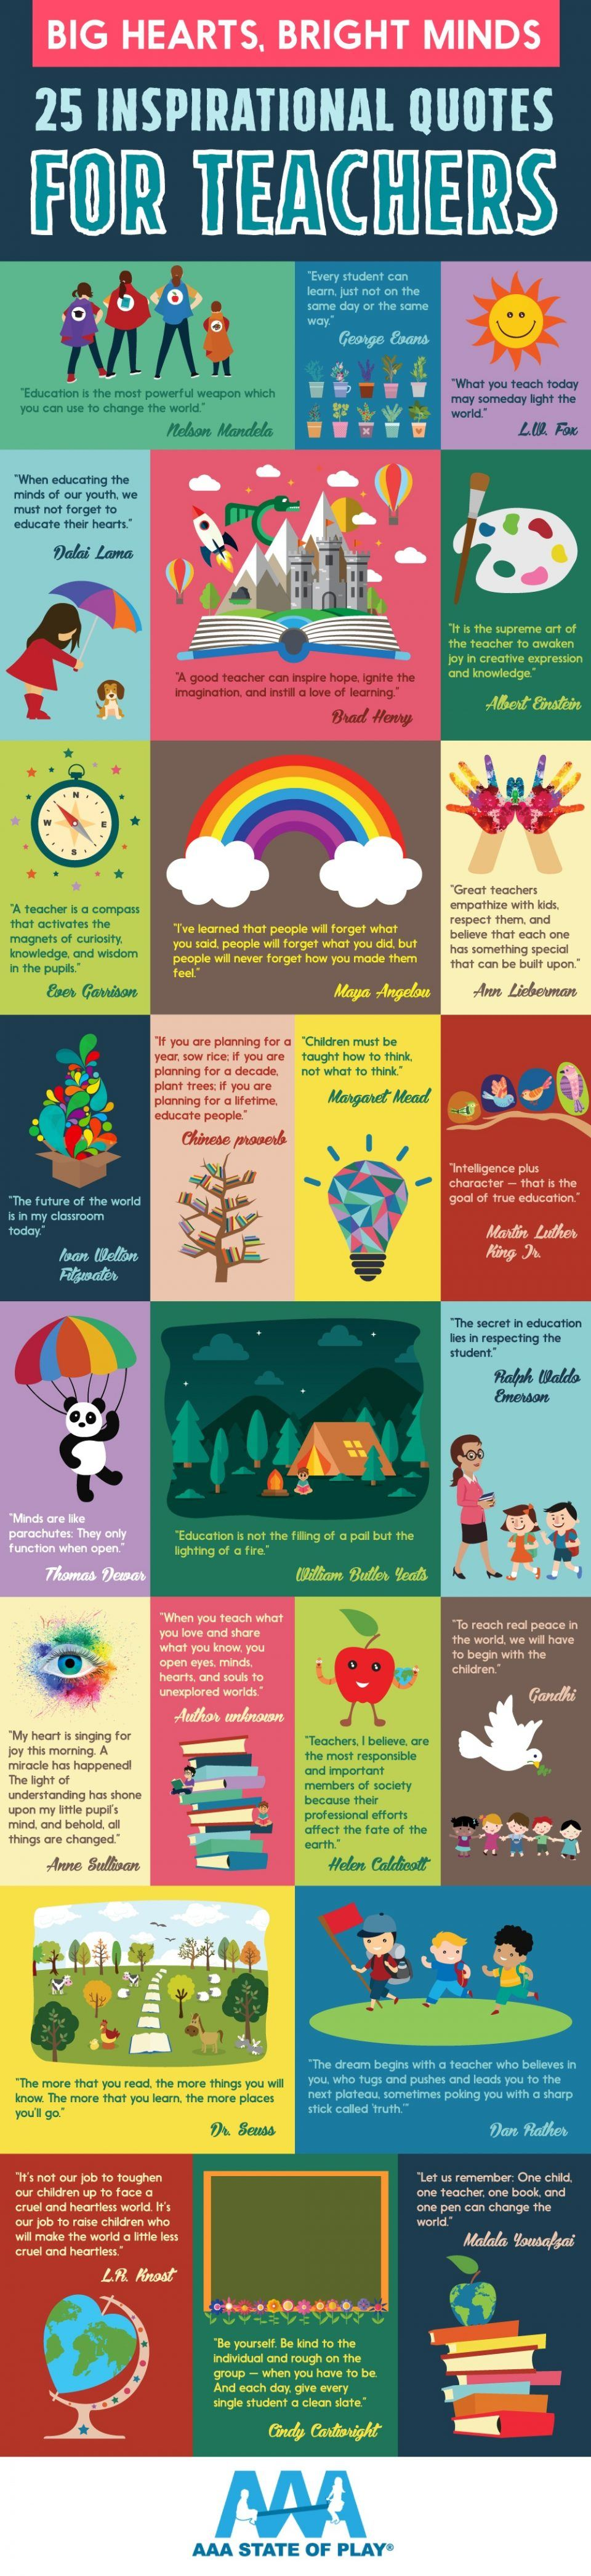 25 Inspirational Quotes for Teachers Infographic